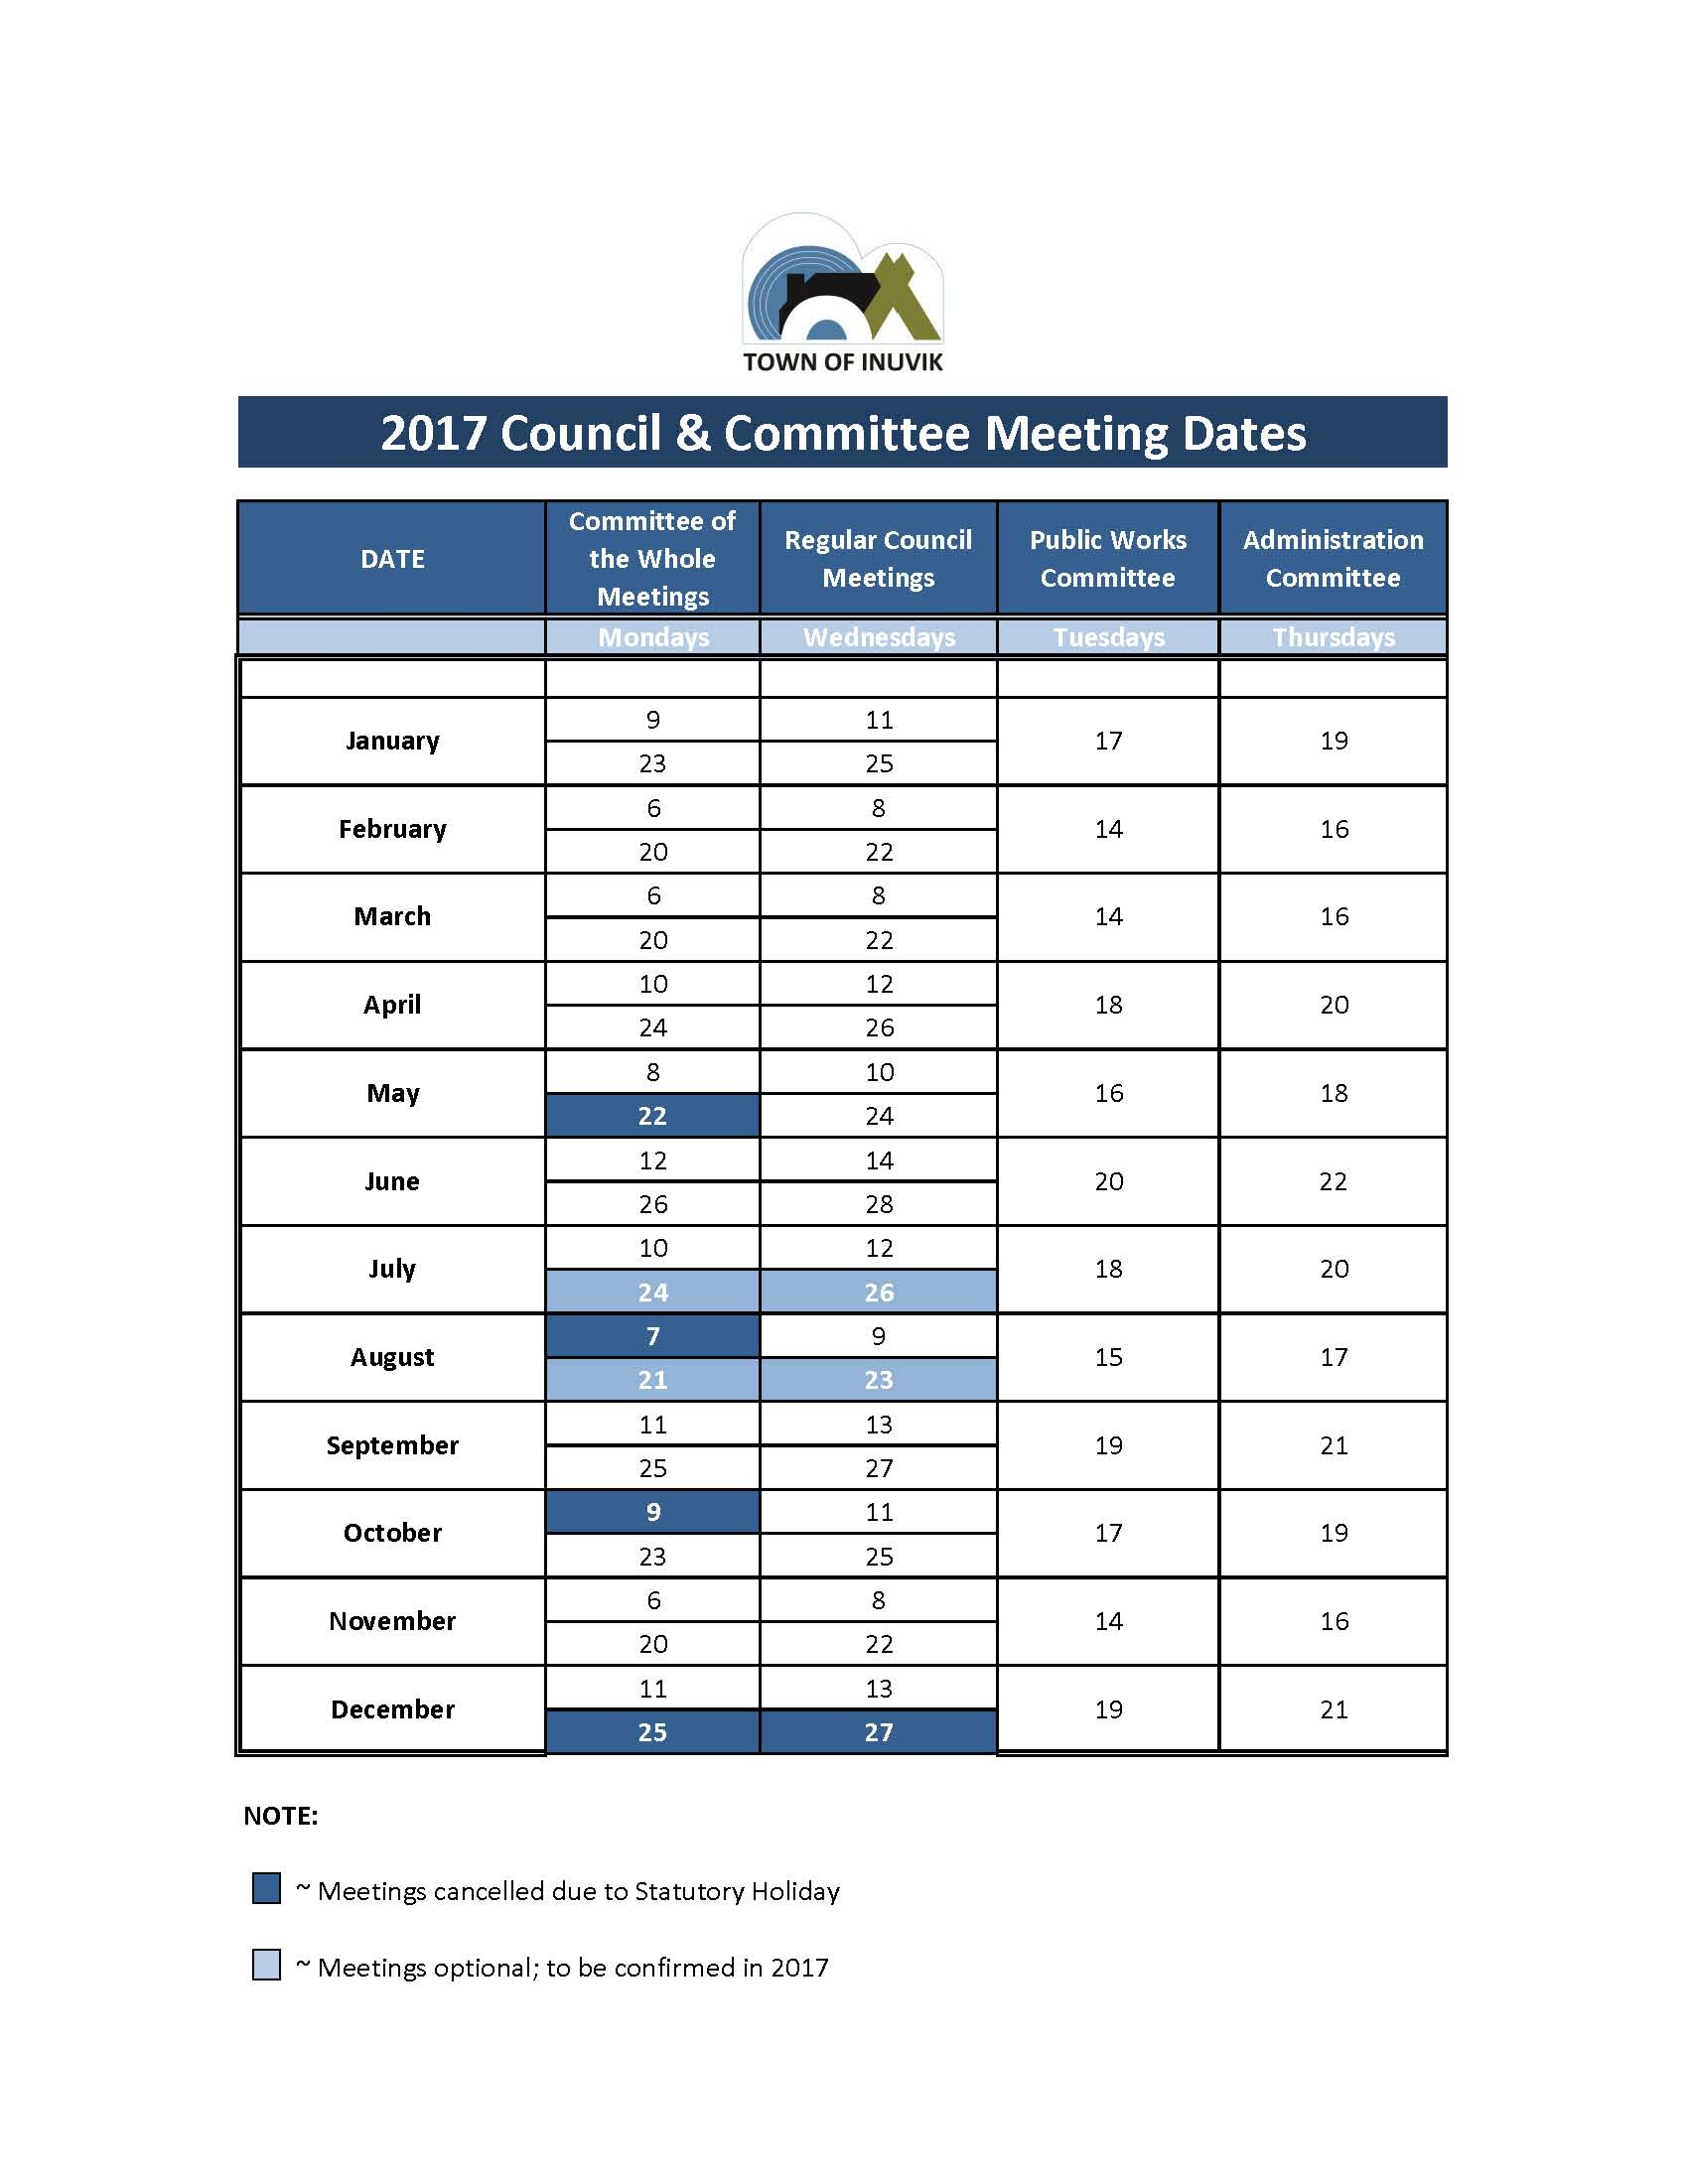 2017 Council and Committee Meeting Schedule